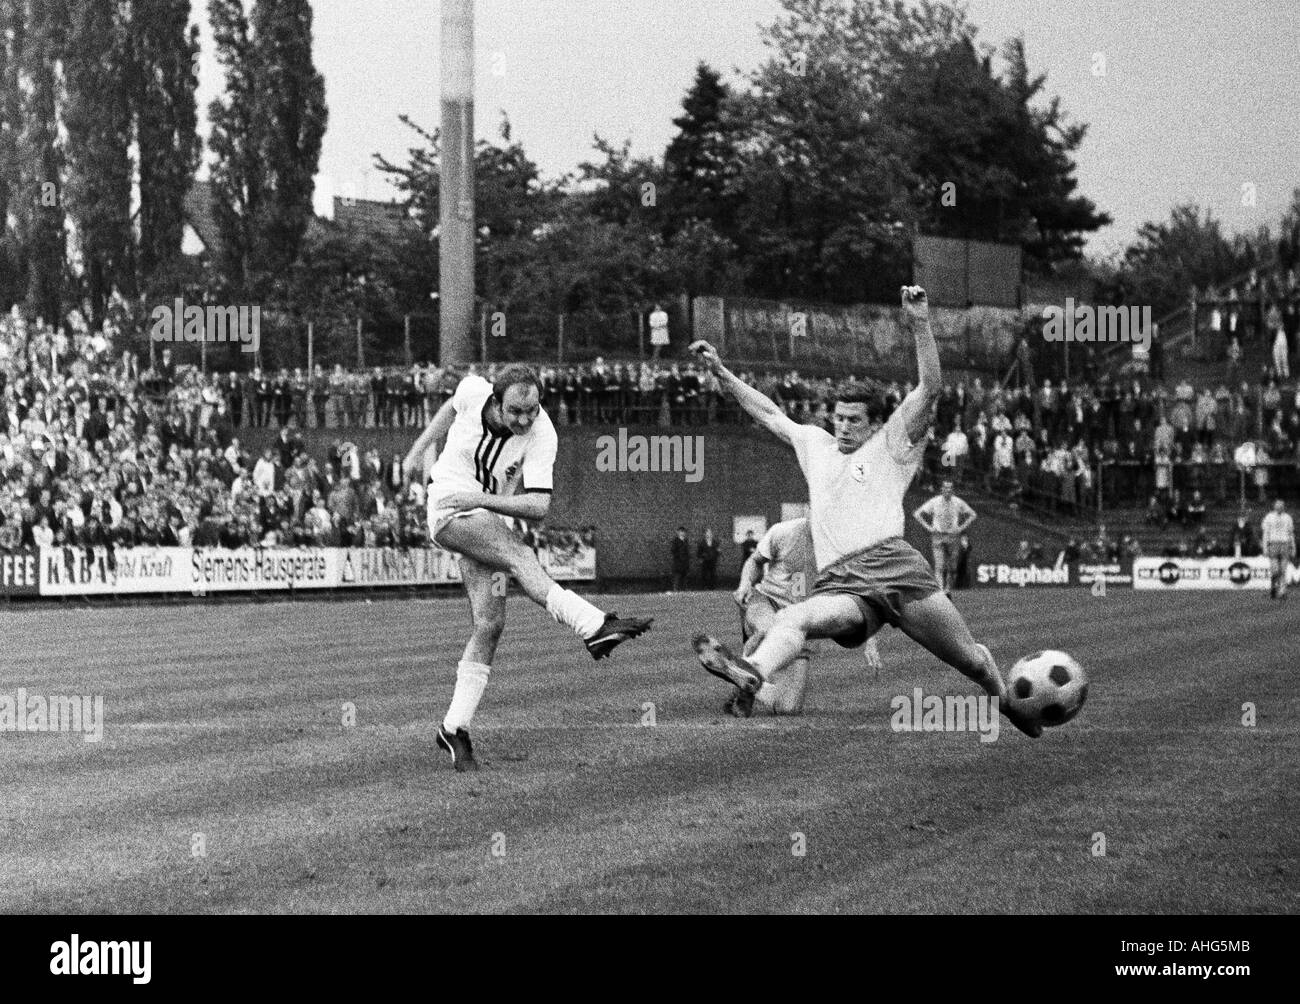 football, Bundesliga, 1968/1969, Boekelberg Stadium, Borussia Moenchengladbach versus Eintracht Brunswick 1:1, scene of the match, Horst Koeppel (Gladbach) left shots on goal, right Franz Merkhoffer (Braunschweig) - Stock Image